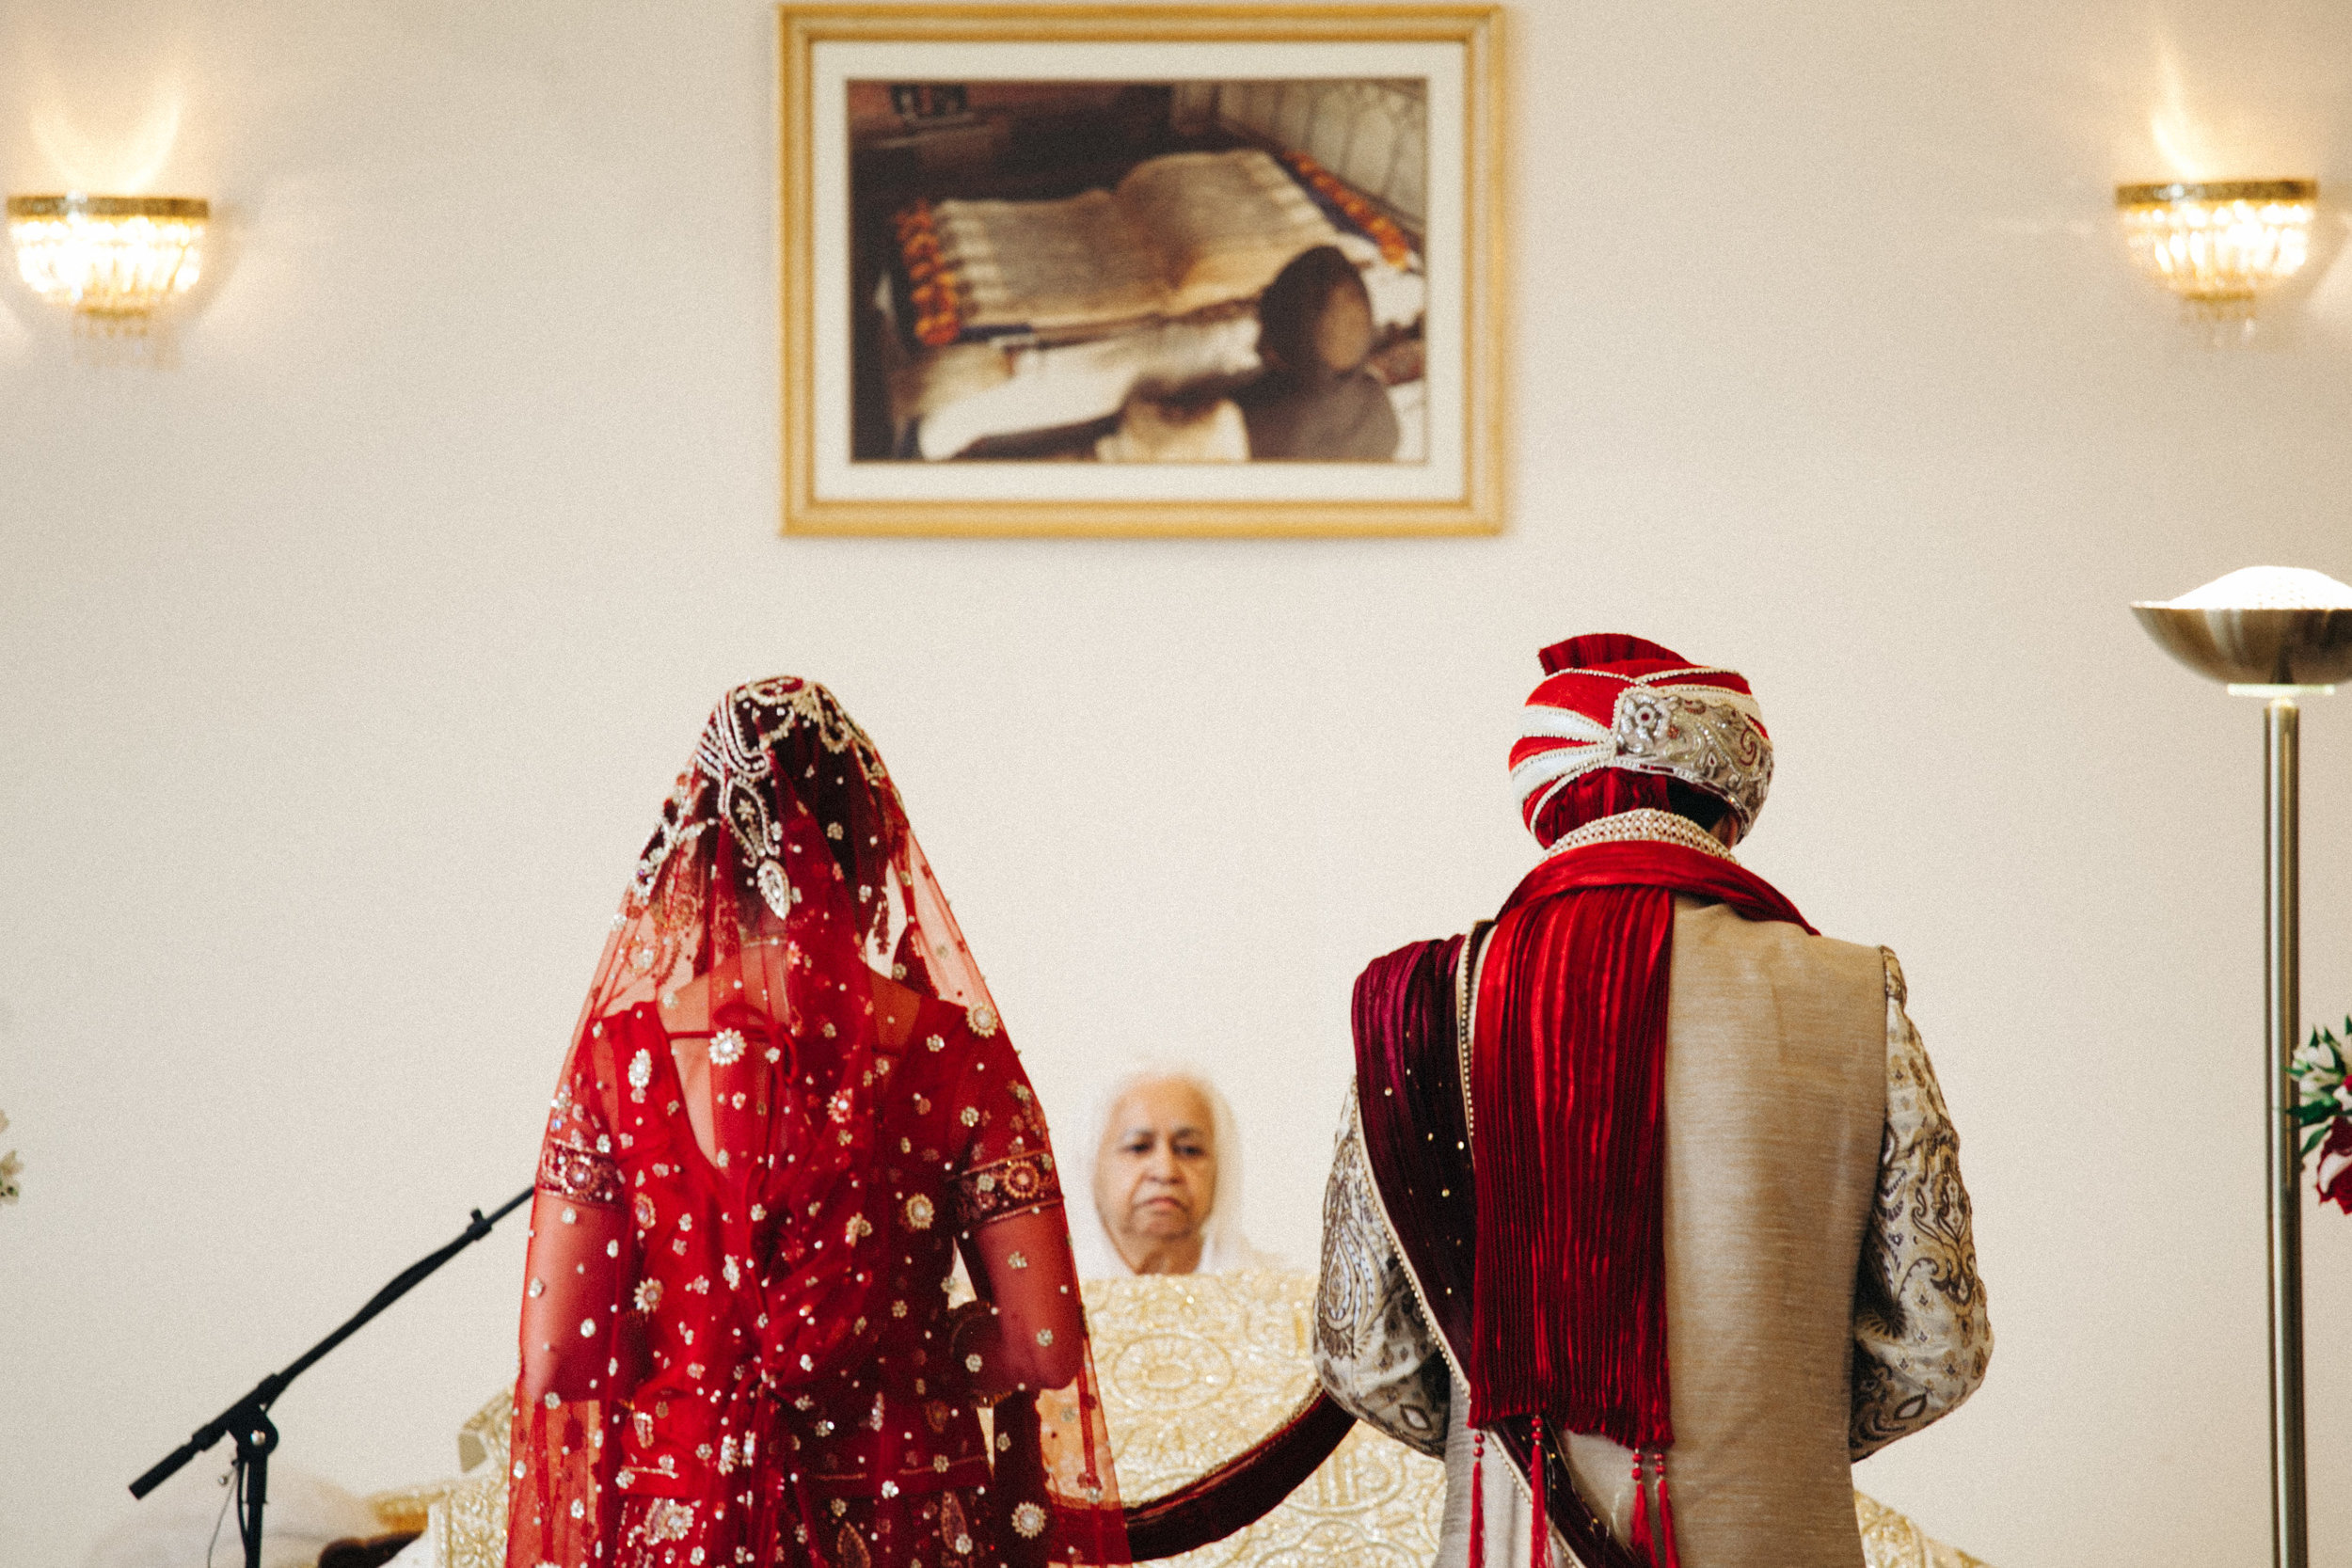 During the Sikh wedding ceremony